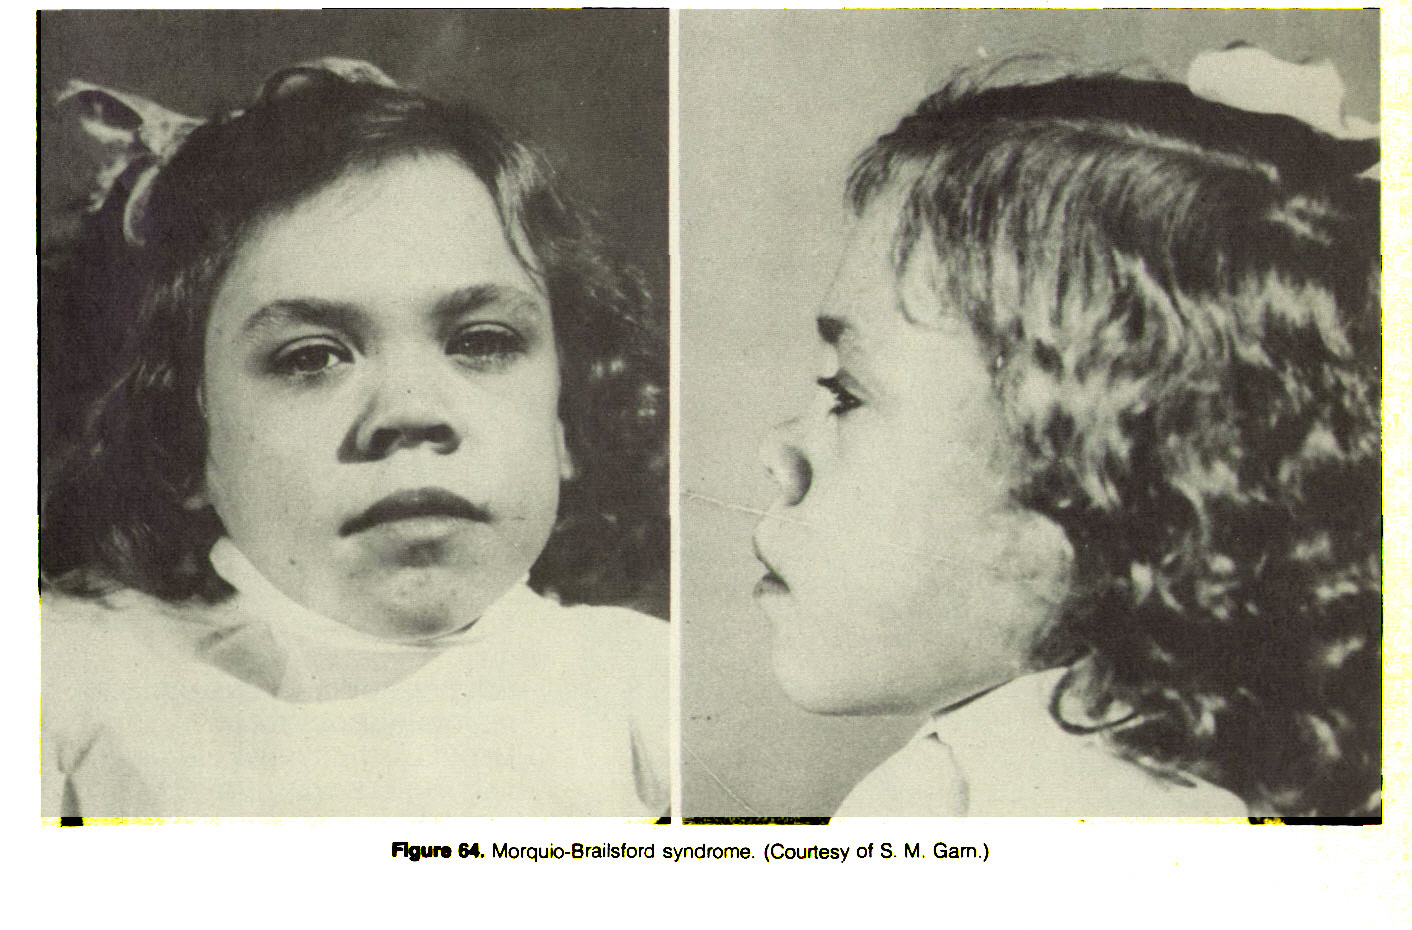 Figure 64. Morquio-Brailsford syndrome. (Courtesy of S. M. Garn.)